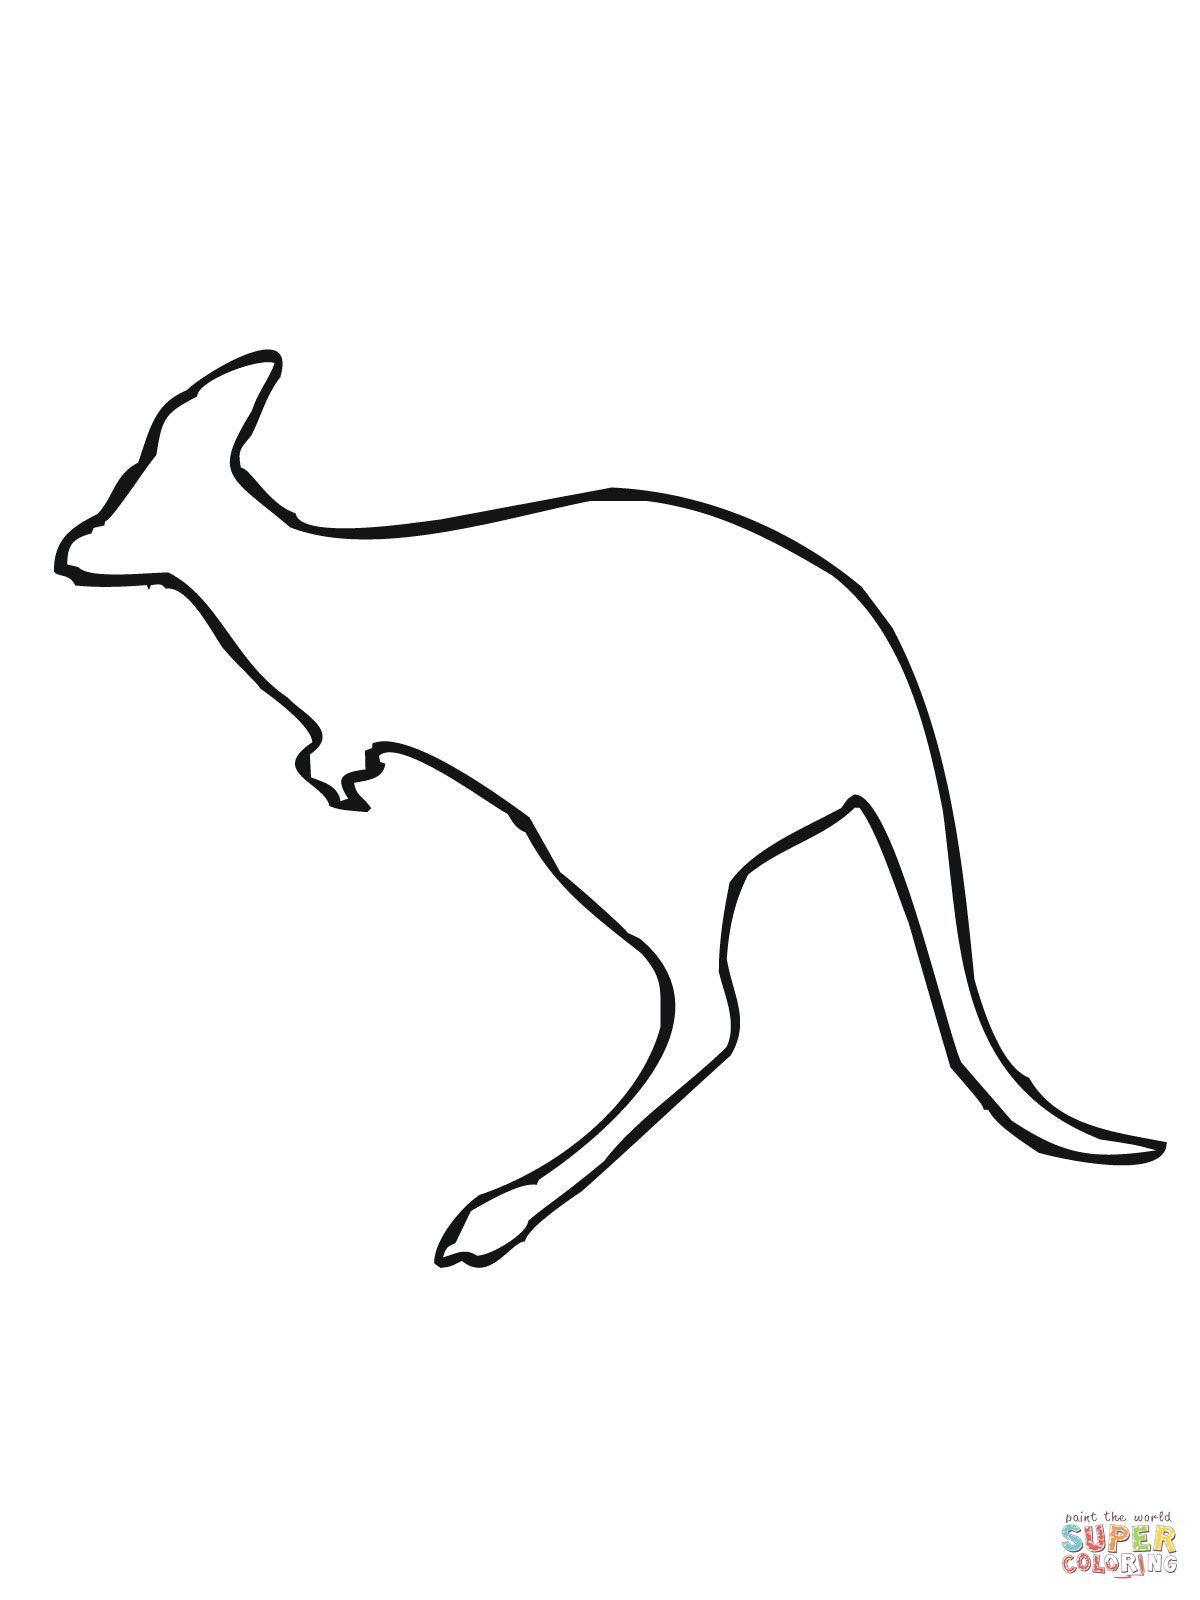 Leaping Kangaroo Outline coloring page.